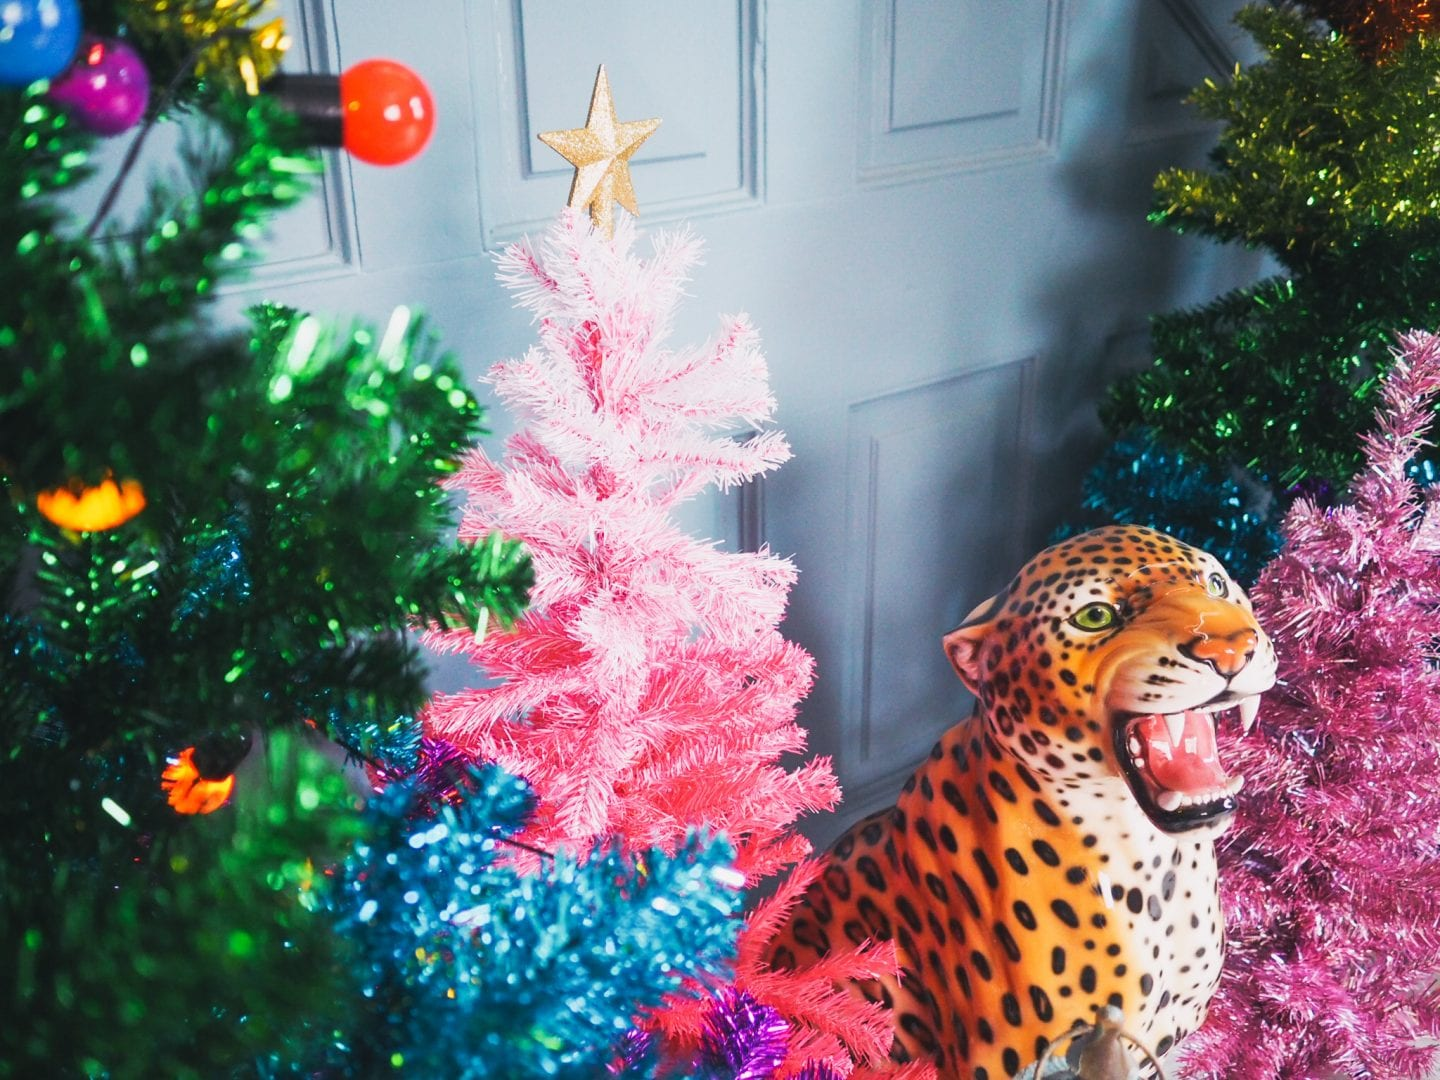 fashion-for-lunch-blog-home-christmas-house-colourful-colour-holiday-decorations-leopard-statue